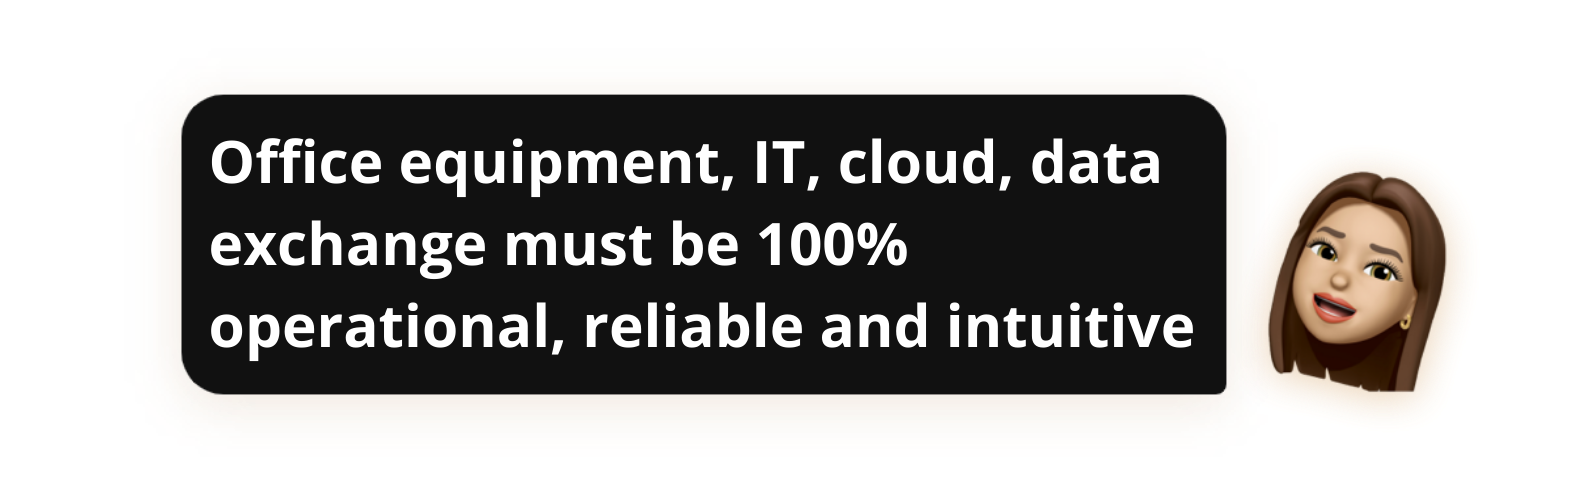 Office equipment, IT, cloud and information storage, data exchange must be 100% operational, reliable and intuitive - Popwork